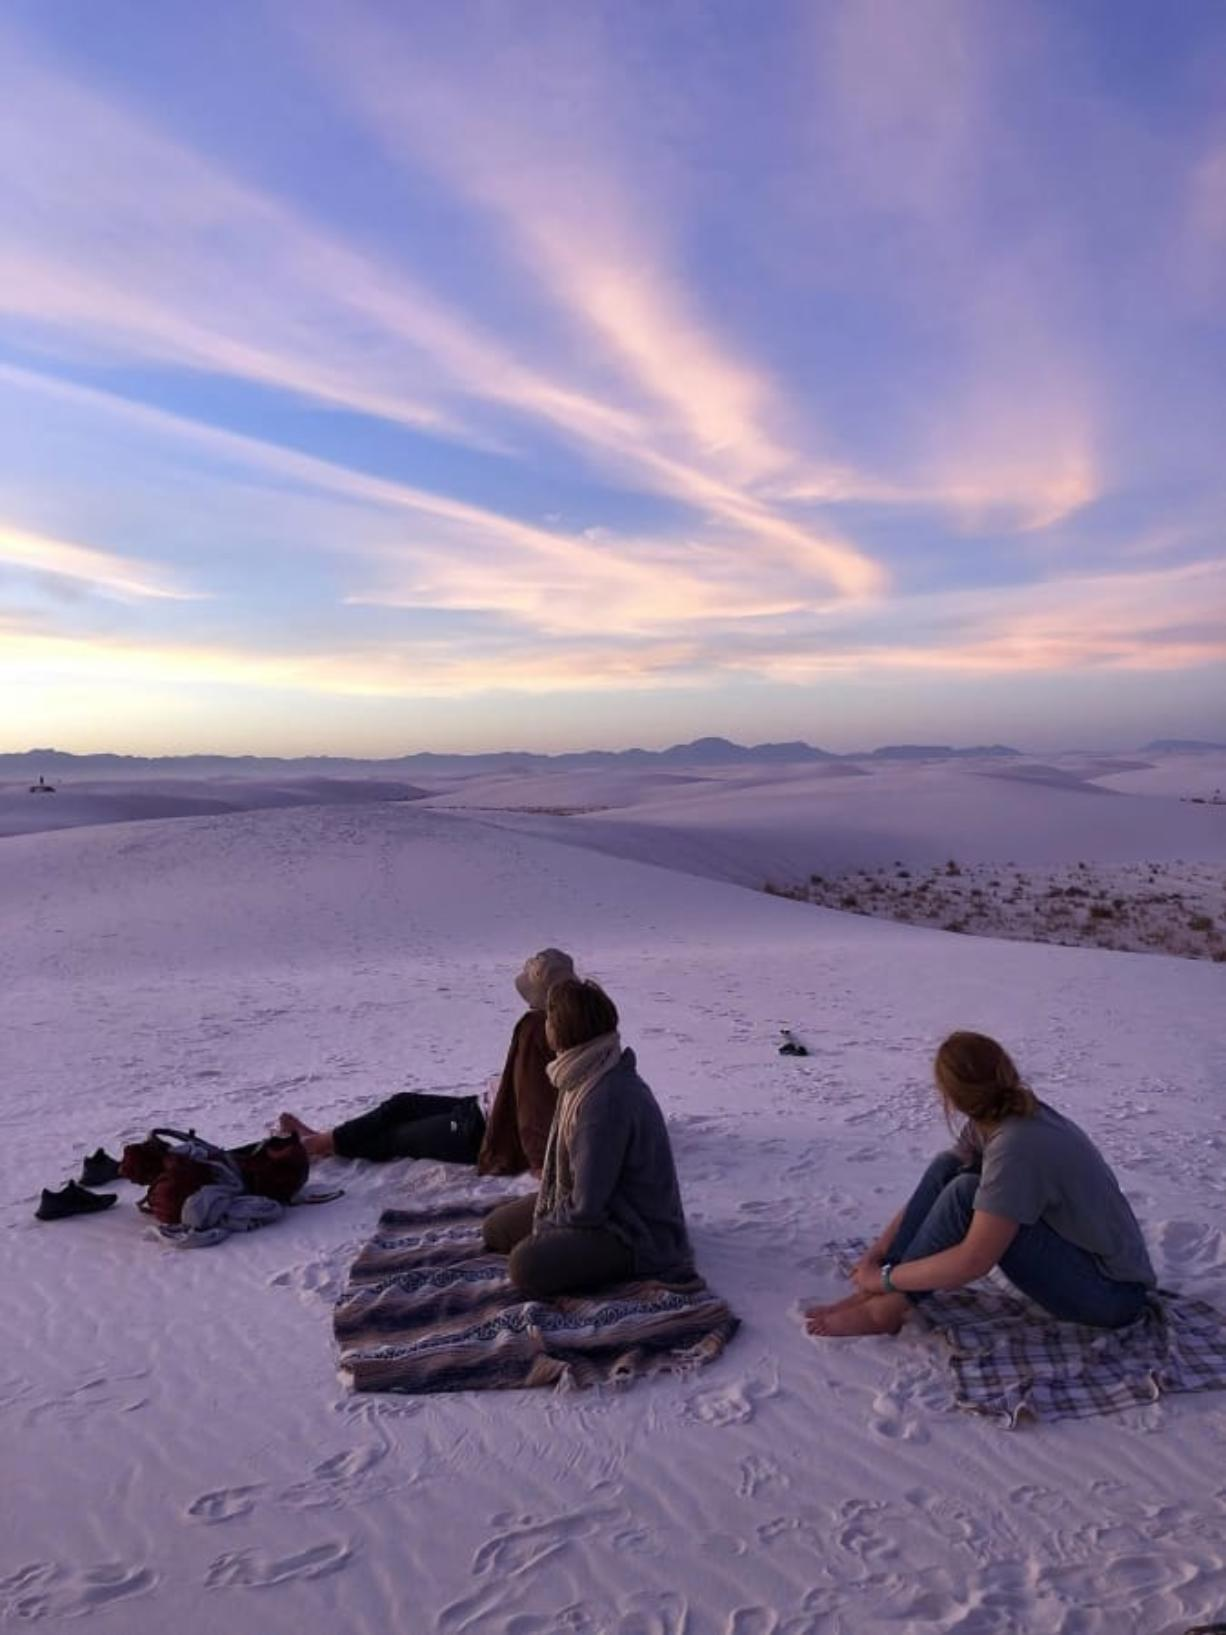 Campers catch the sunset on top of the dunes in White Sands National Park in New Mexico. (Photos by Melanie Radzicki McManus/Chicago Tribune)